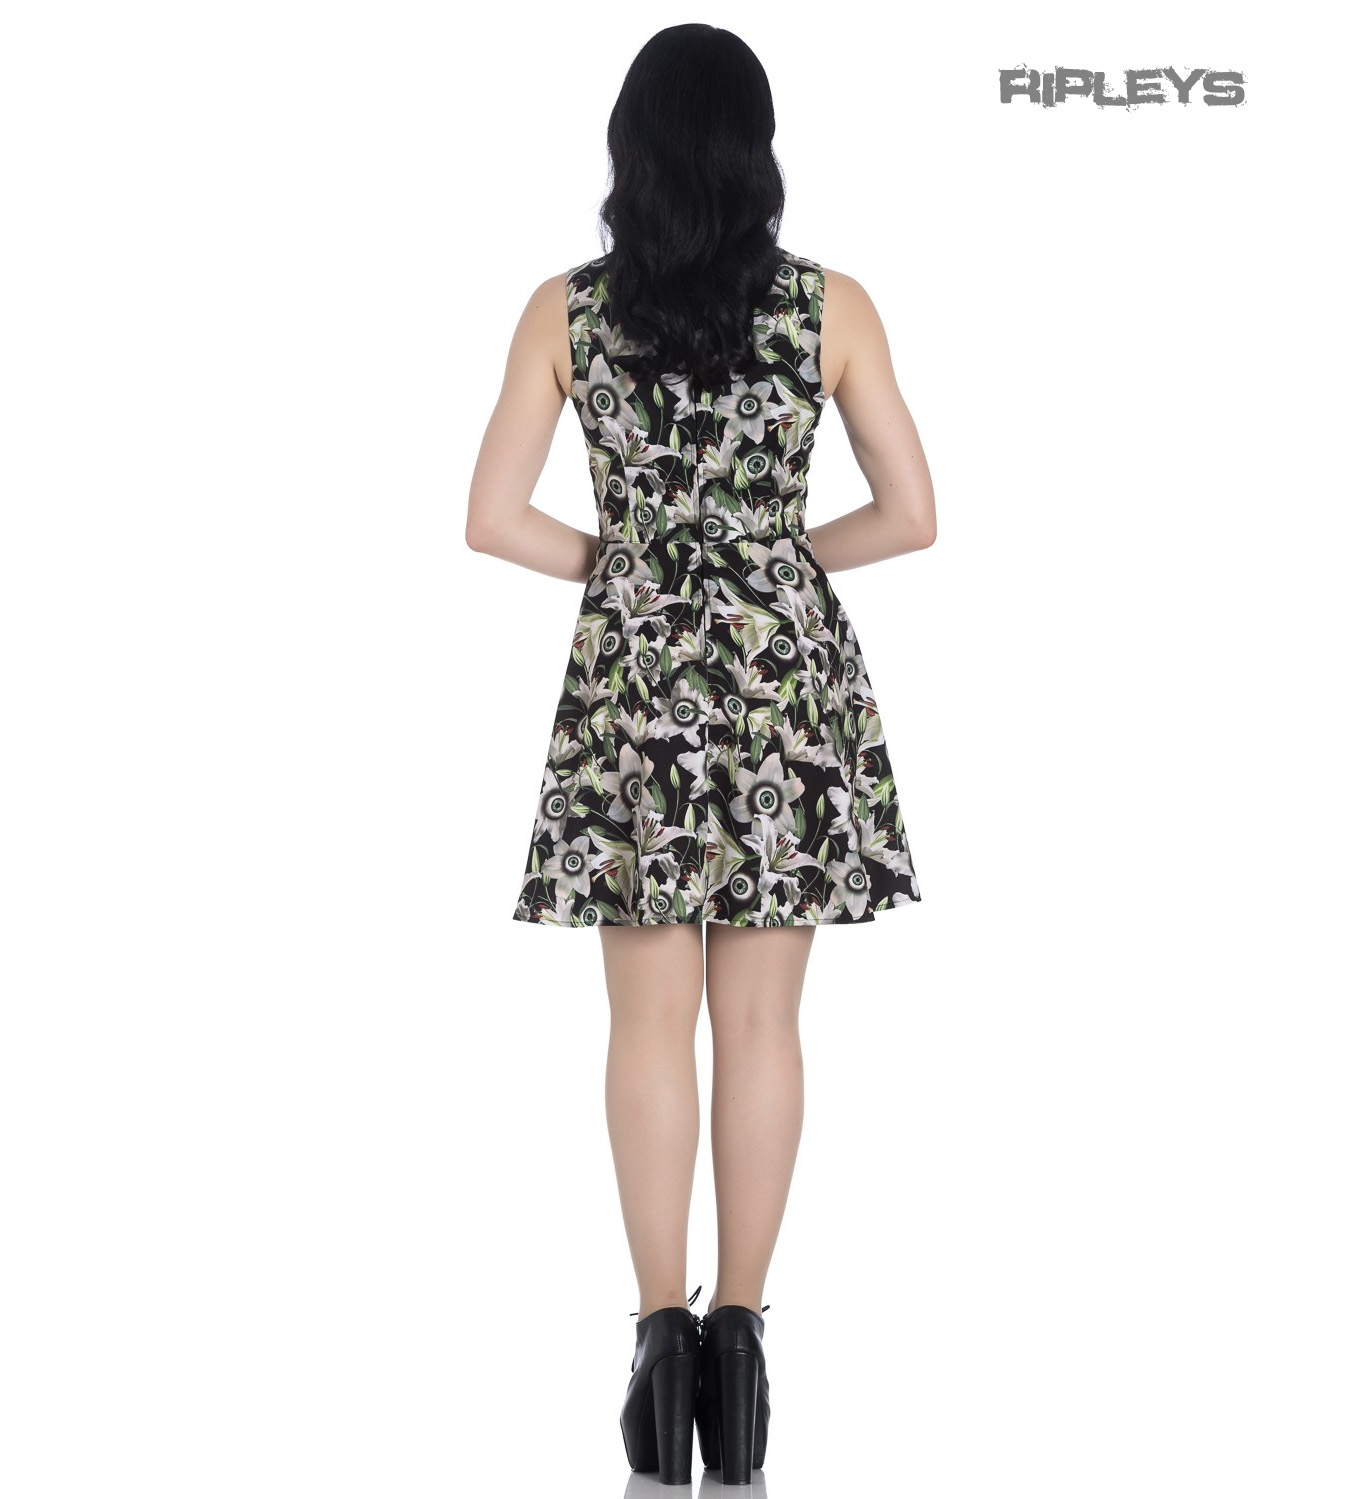 Hell-Bunny-Black-Lace-Up-Goth-Punk-Mini-Dress-PEEPERS-Eyeballs-Flowers-All-Sizes thumbnail 6